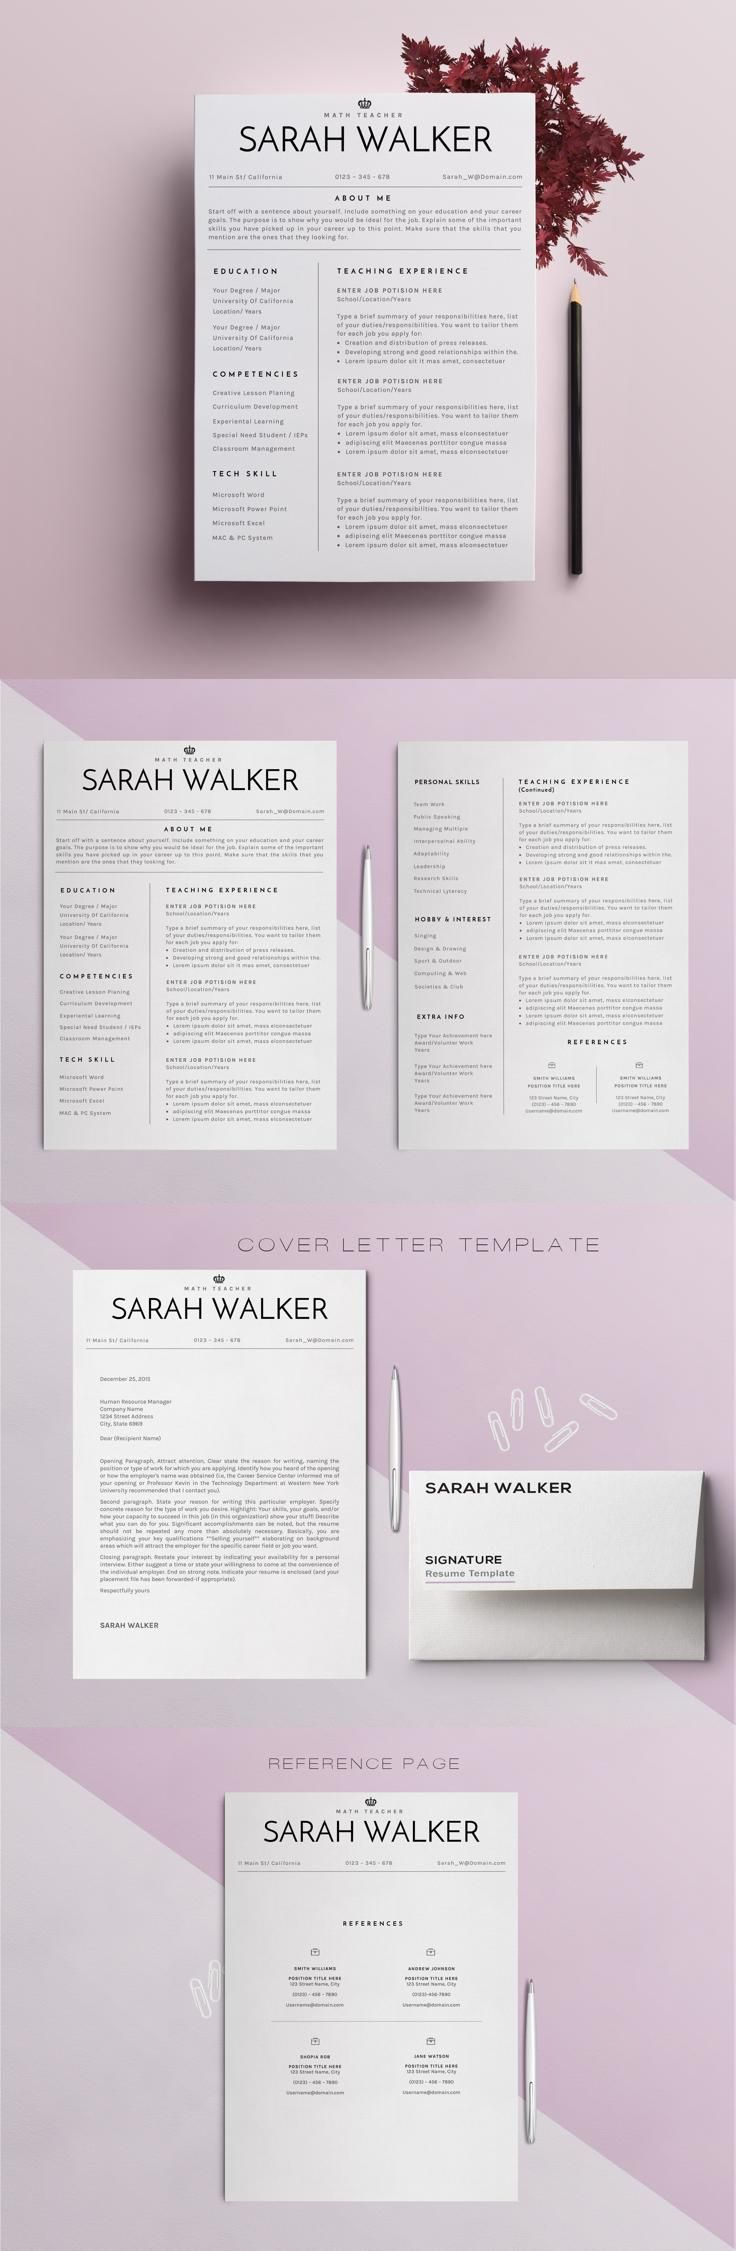 Clean Resume Download%0A  resume  design from themexriver   DOWNLOAD  https   creativemarket com